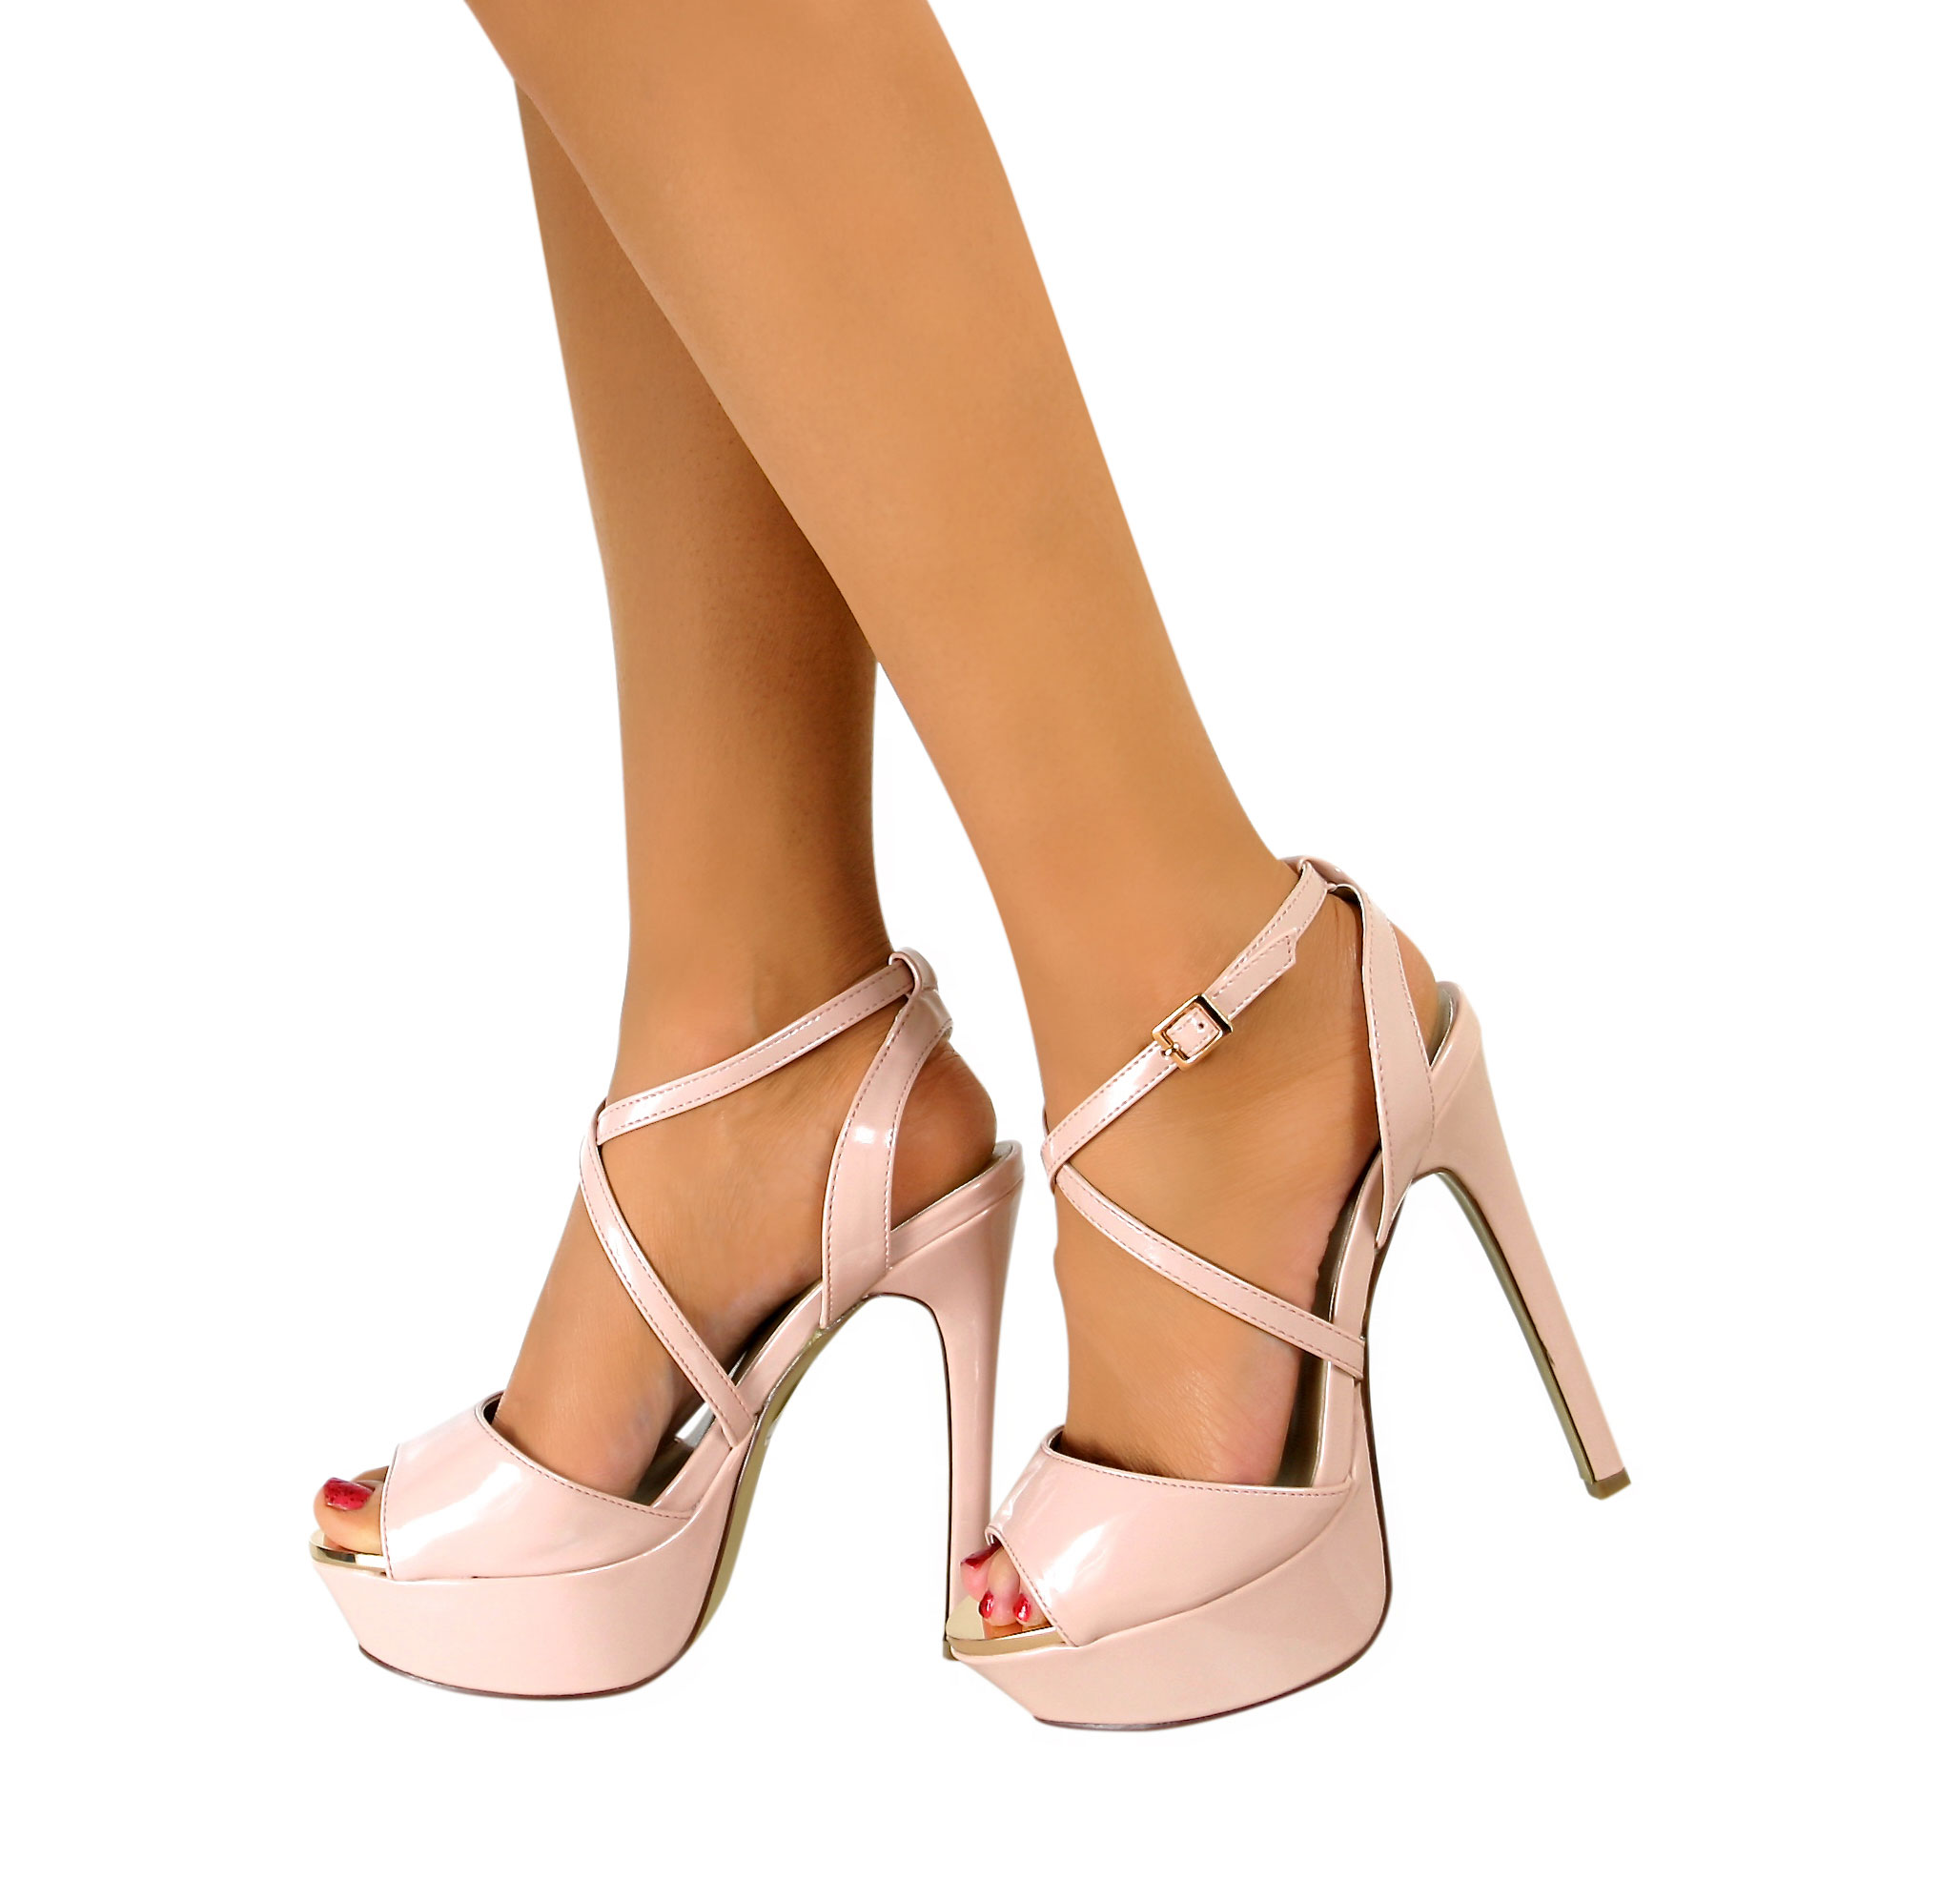 Womens sandals in size 12 - Womens High Heel Sandals Ladies Party Stiletto Ankle